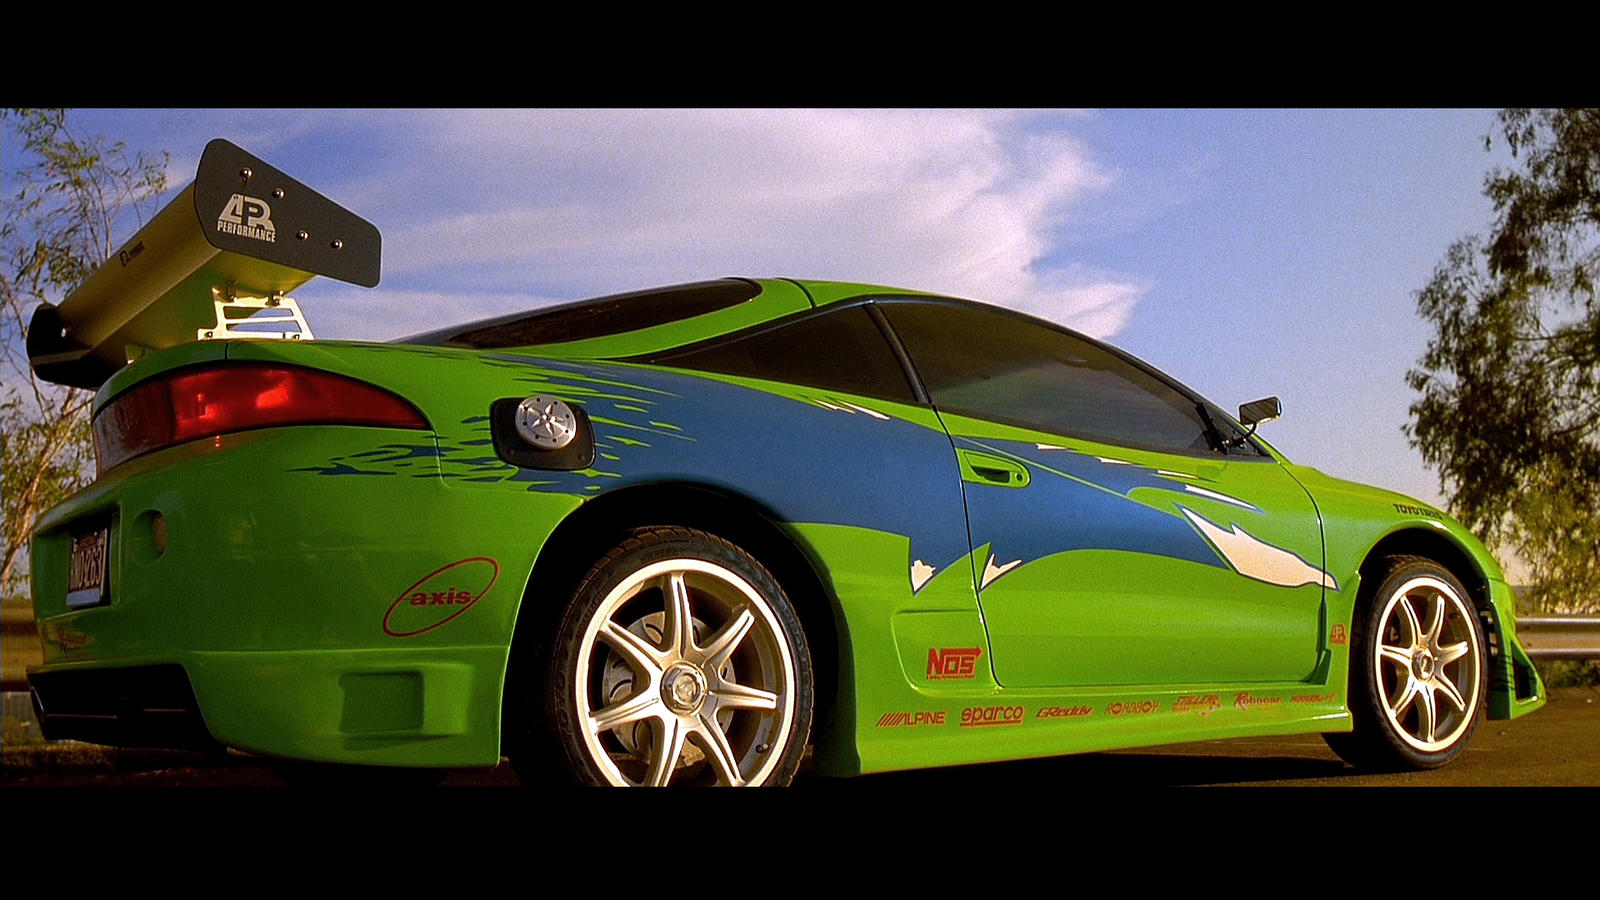 wallpapers fast and furious mitsubishi eclipse description mitshubishi - Mitsubishi Eclipse Fast And Furious Wallpaper